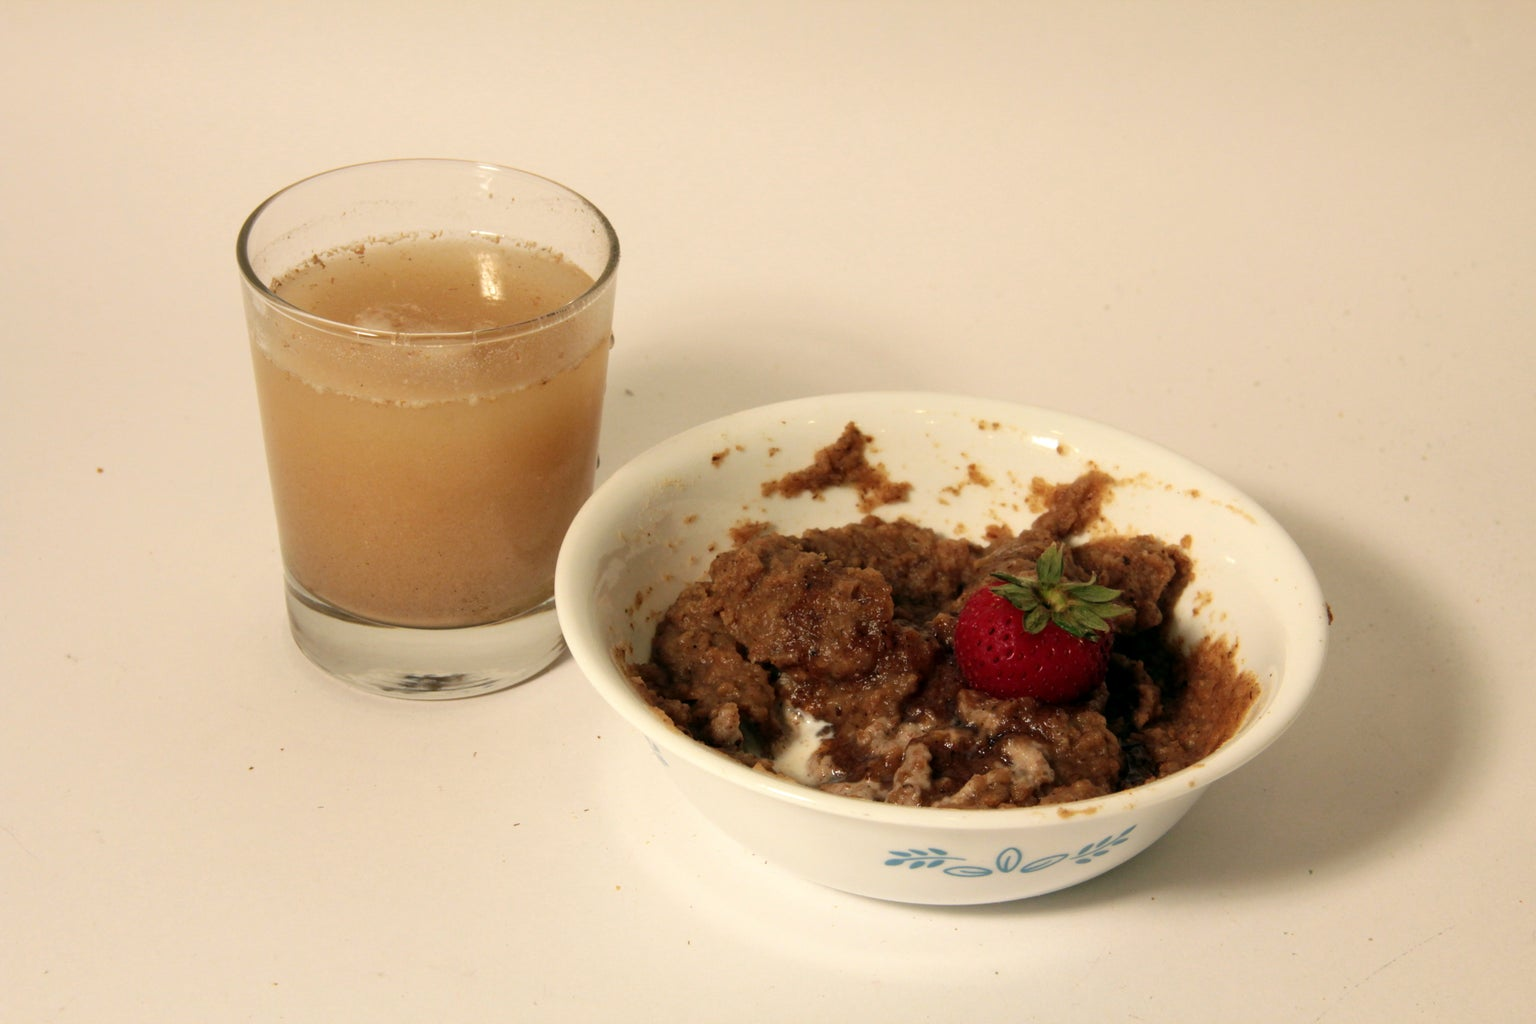 Gruel (Toasted Flour Water)